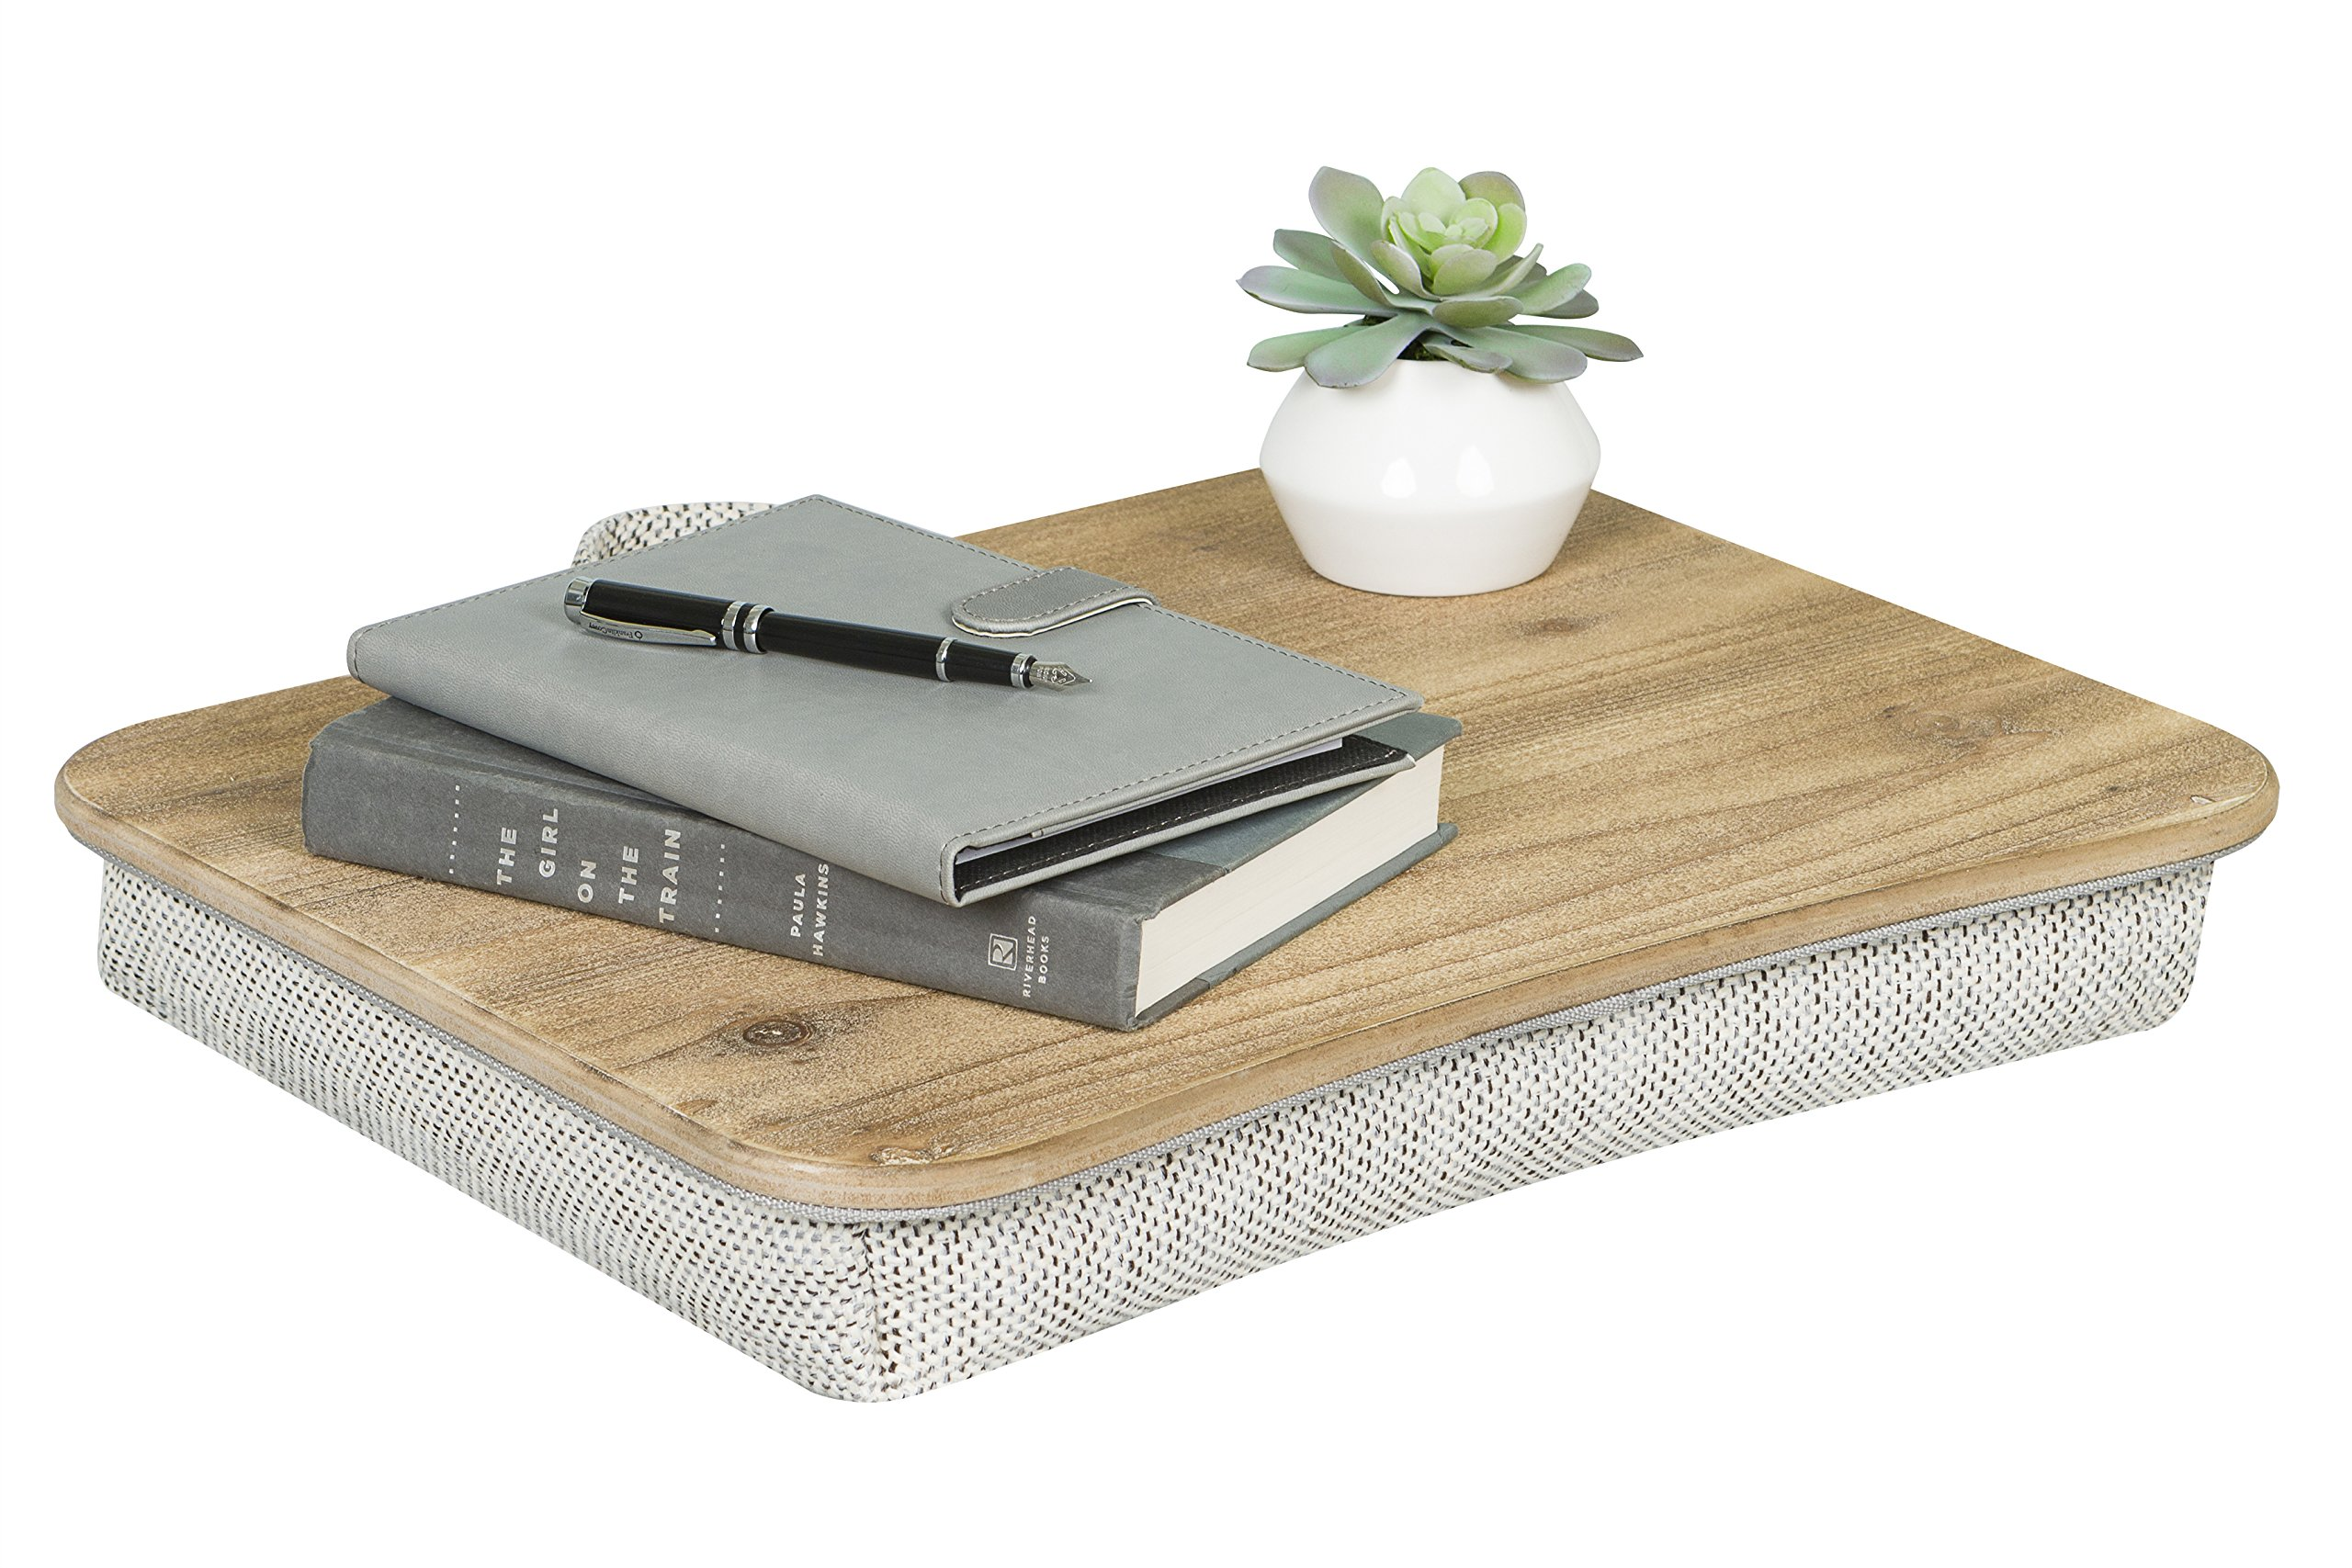 LapGear Heritage Lap Desk - Rustic Brown by Lap Desk